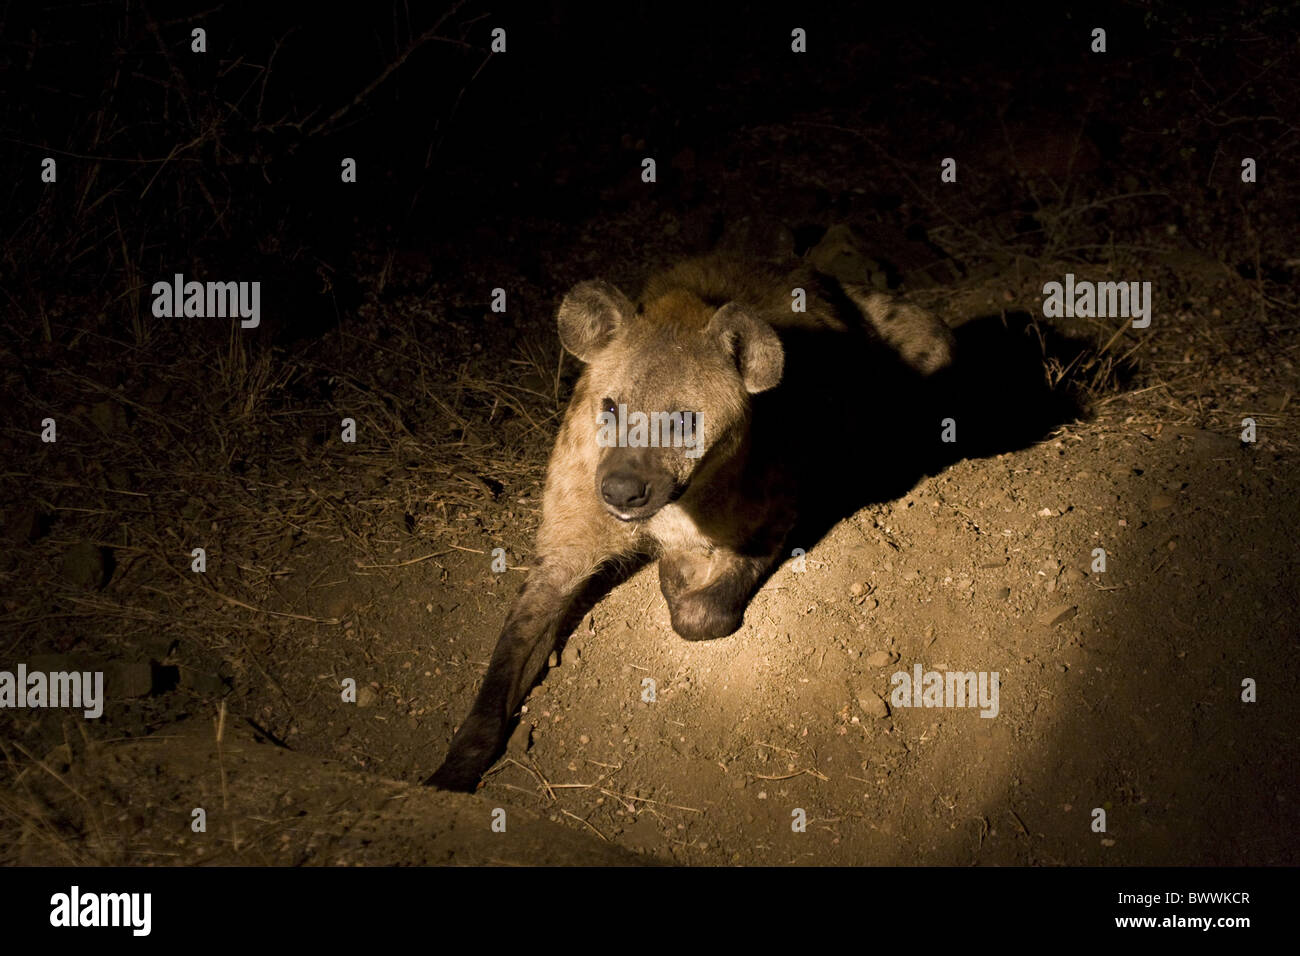 Spotted Hyaena photographed with spot light - Stock Image